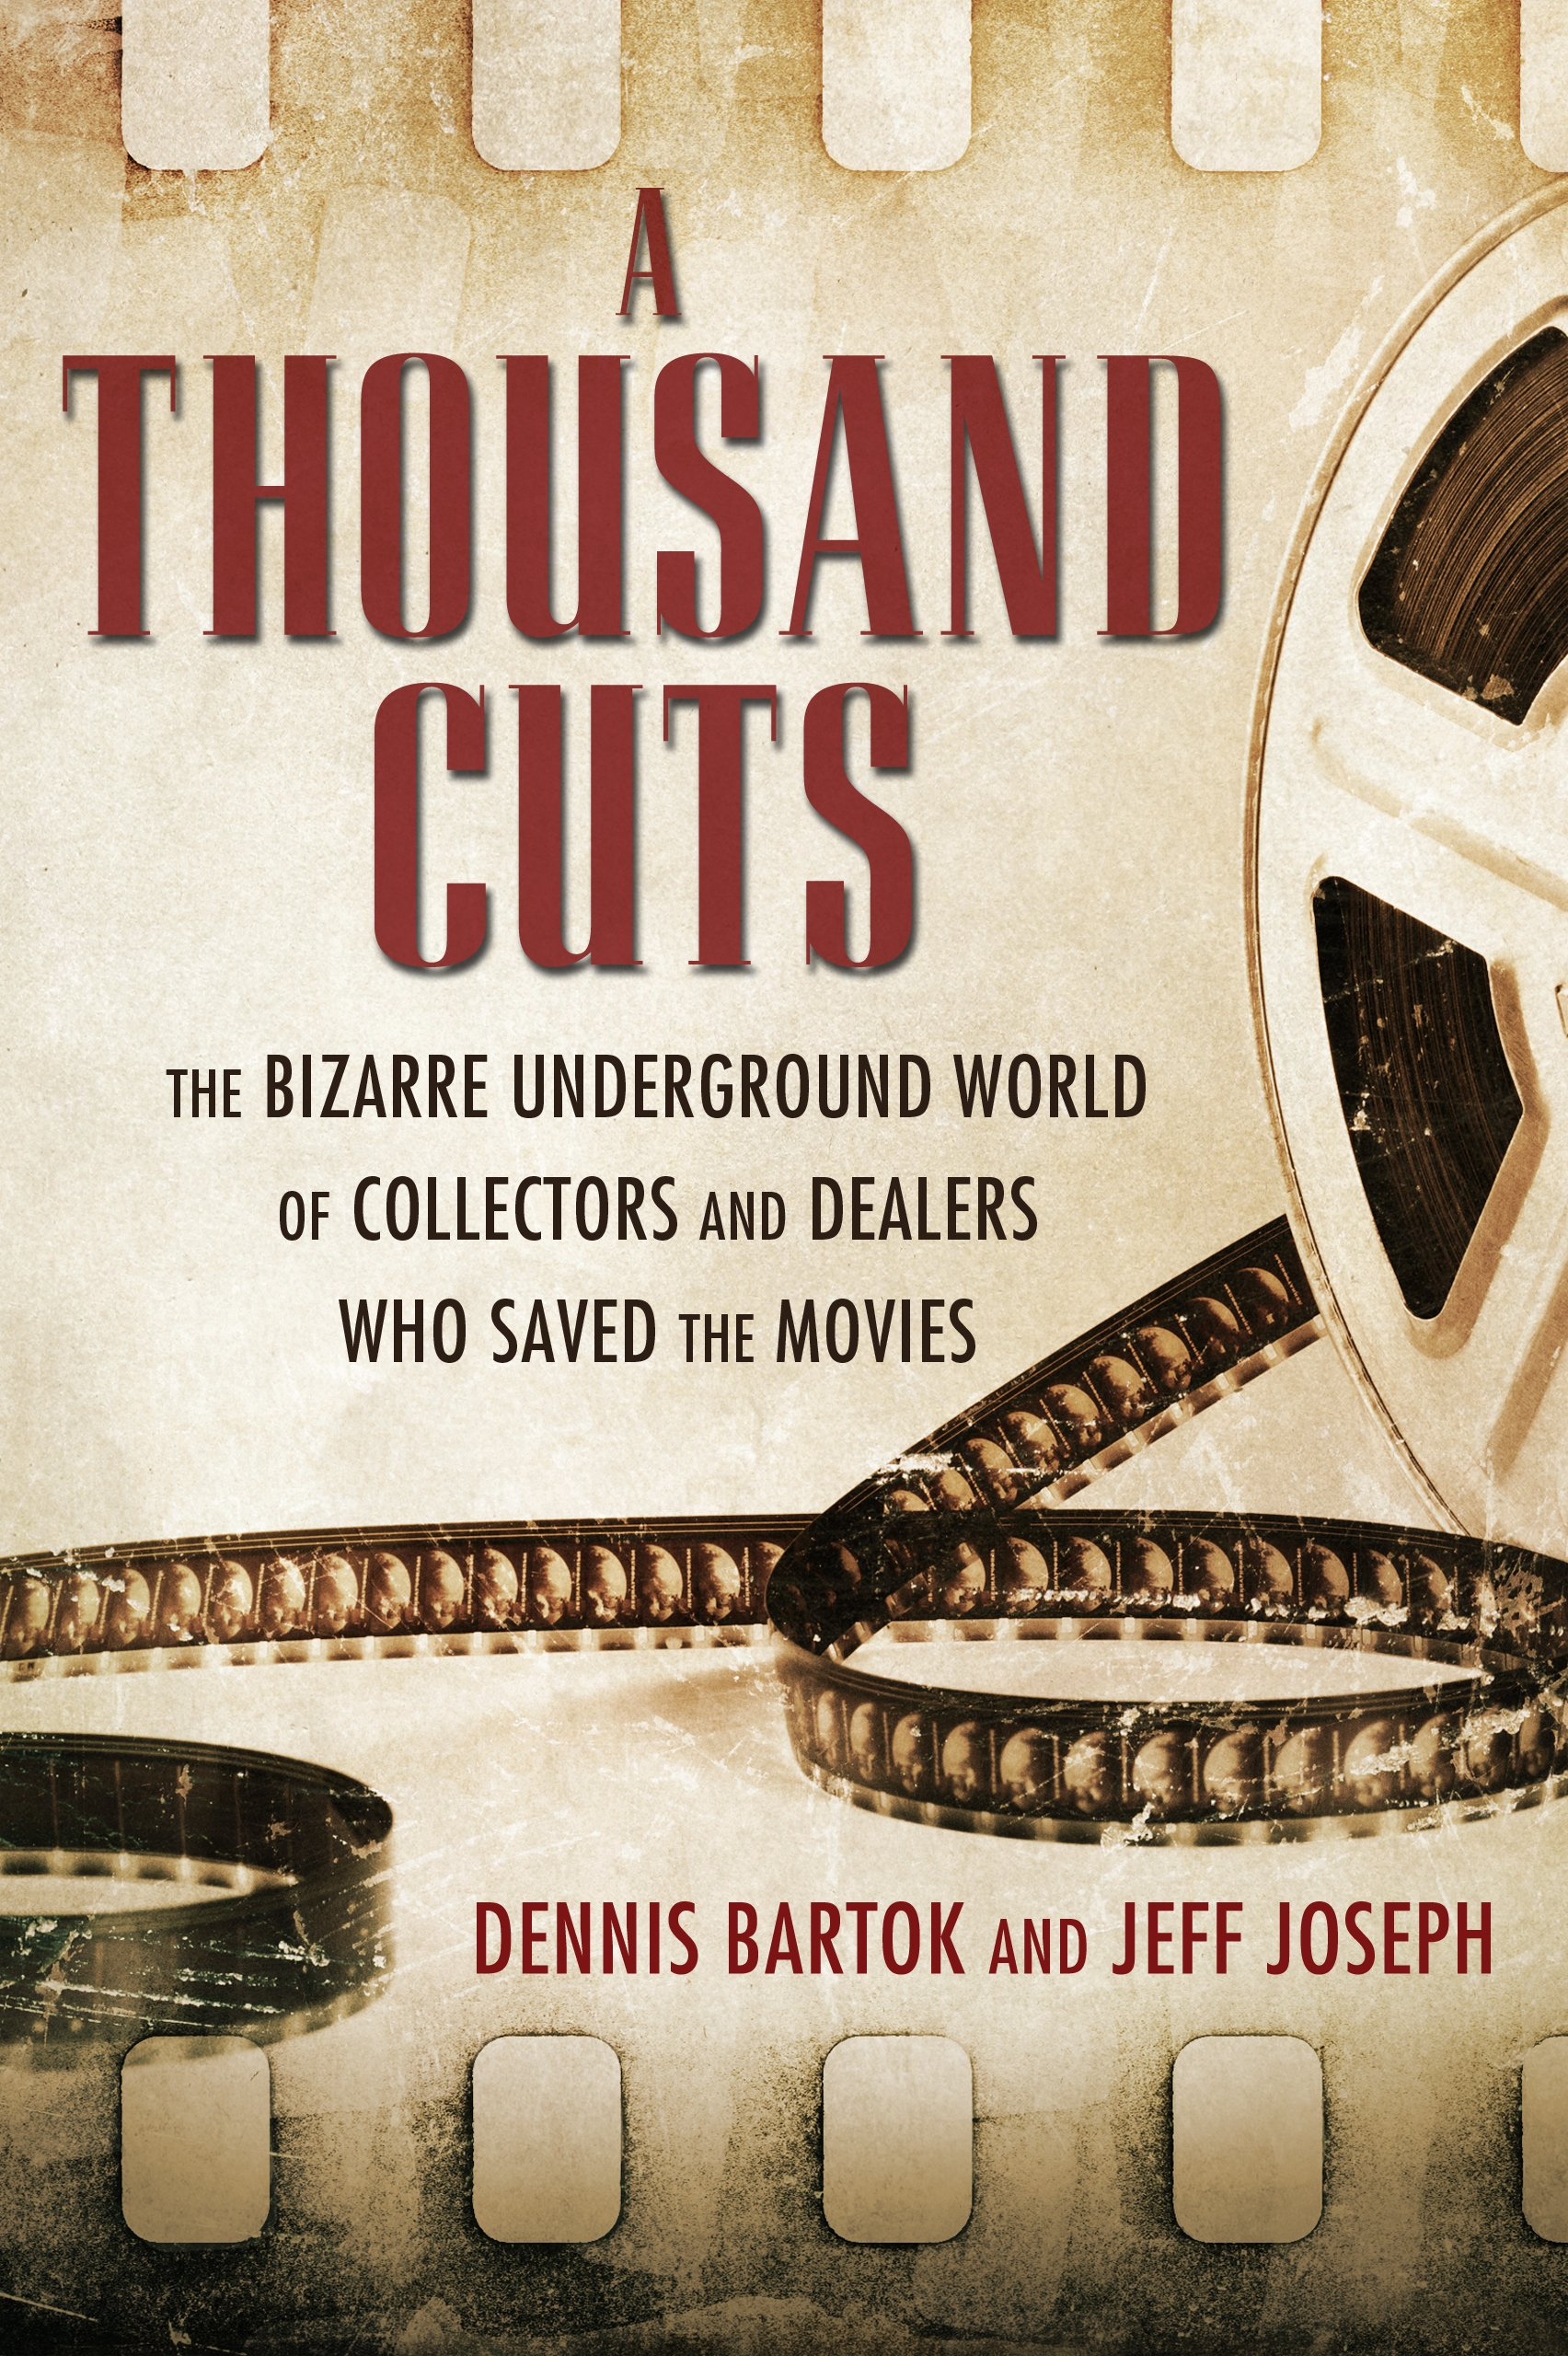 Thousand Cuts Bizarre Underground Collectors product image